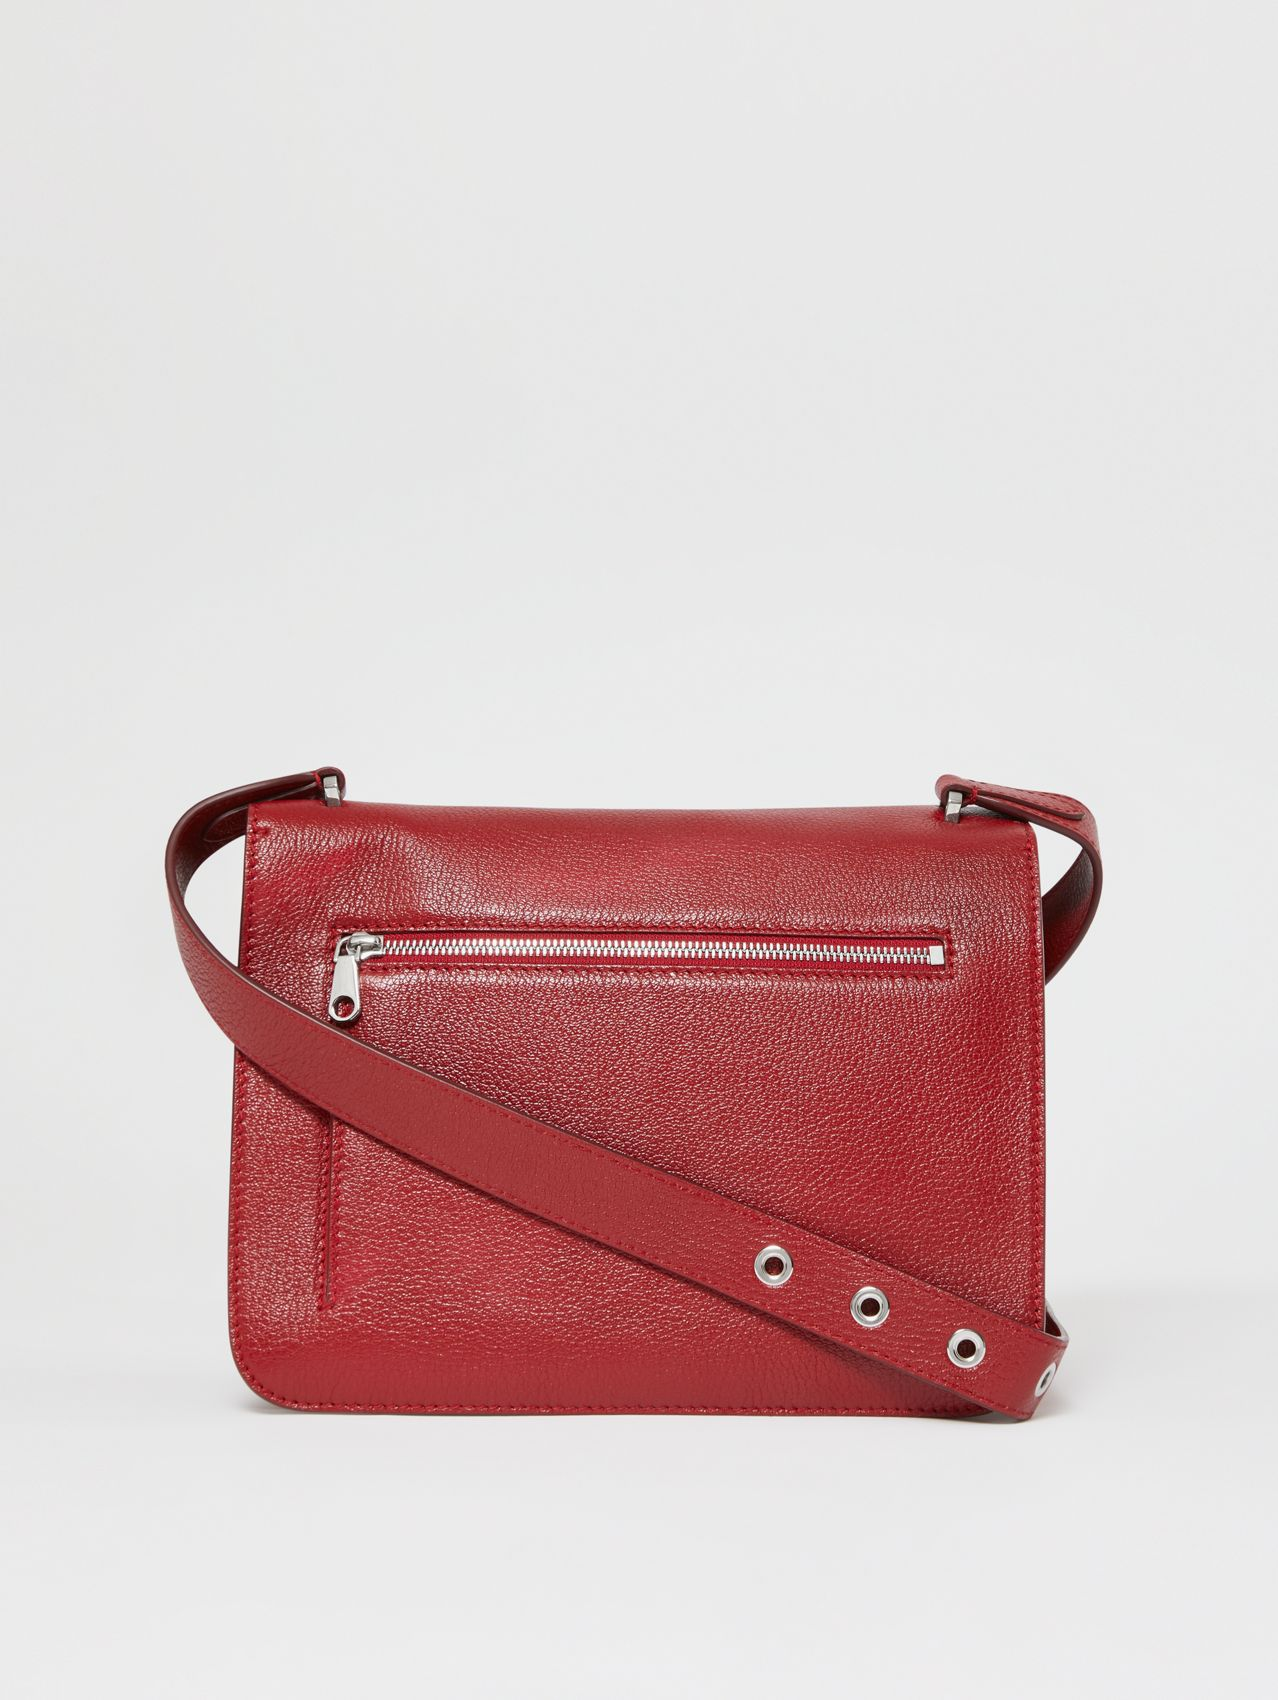 Medium Grainy Leather Alice Bag in Dark Carmine